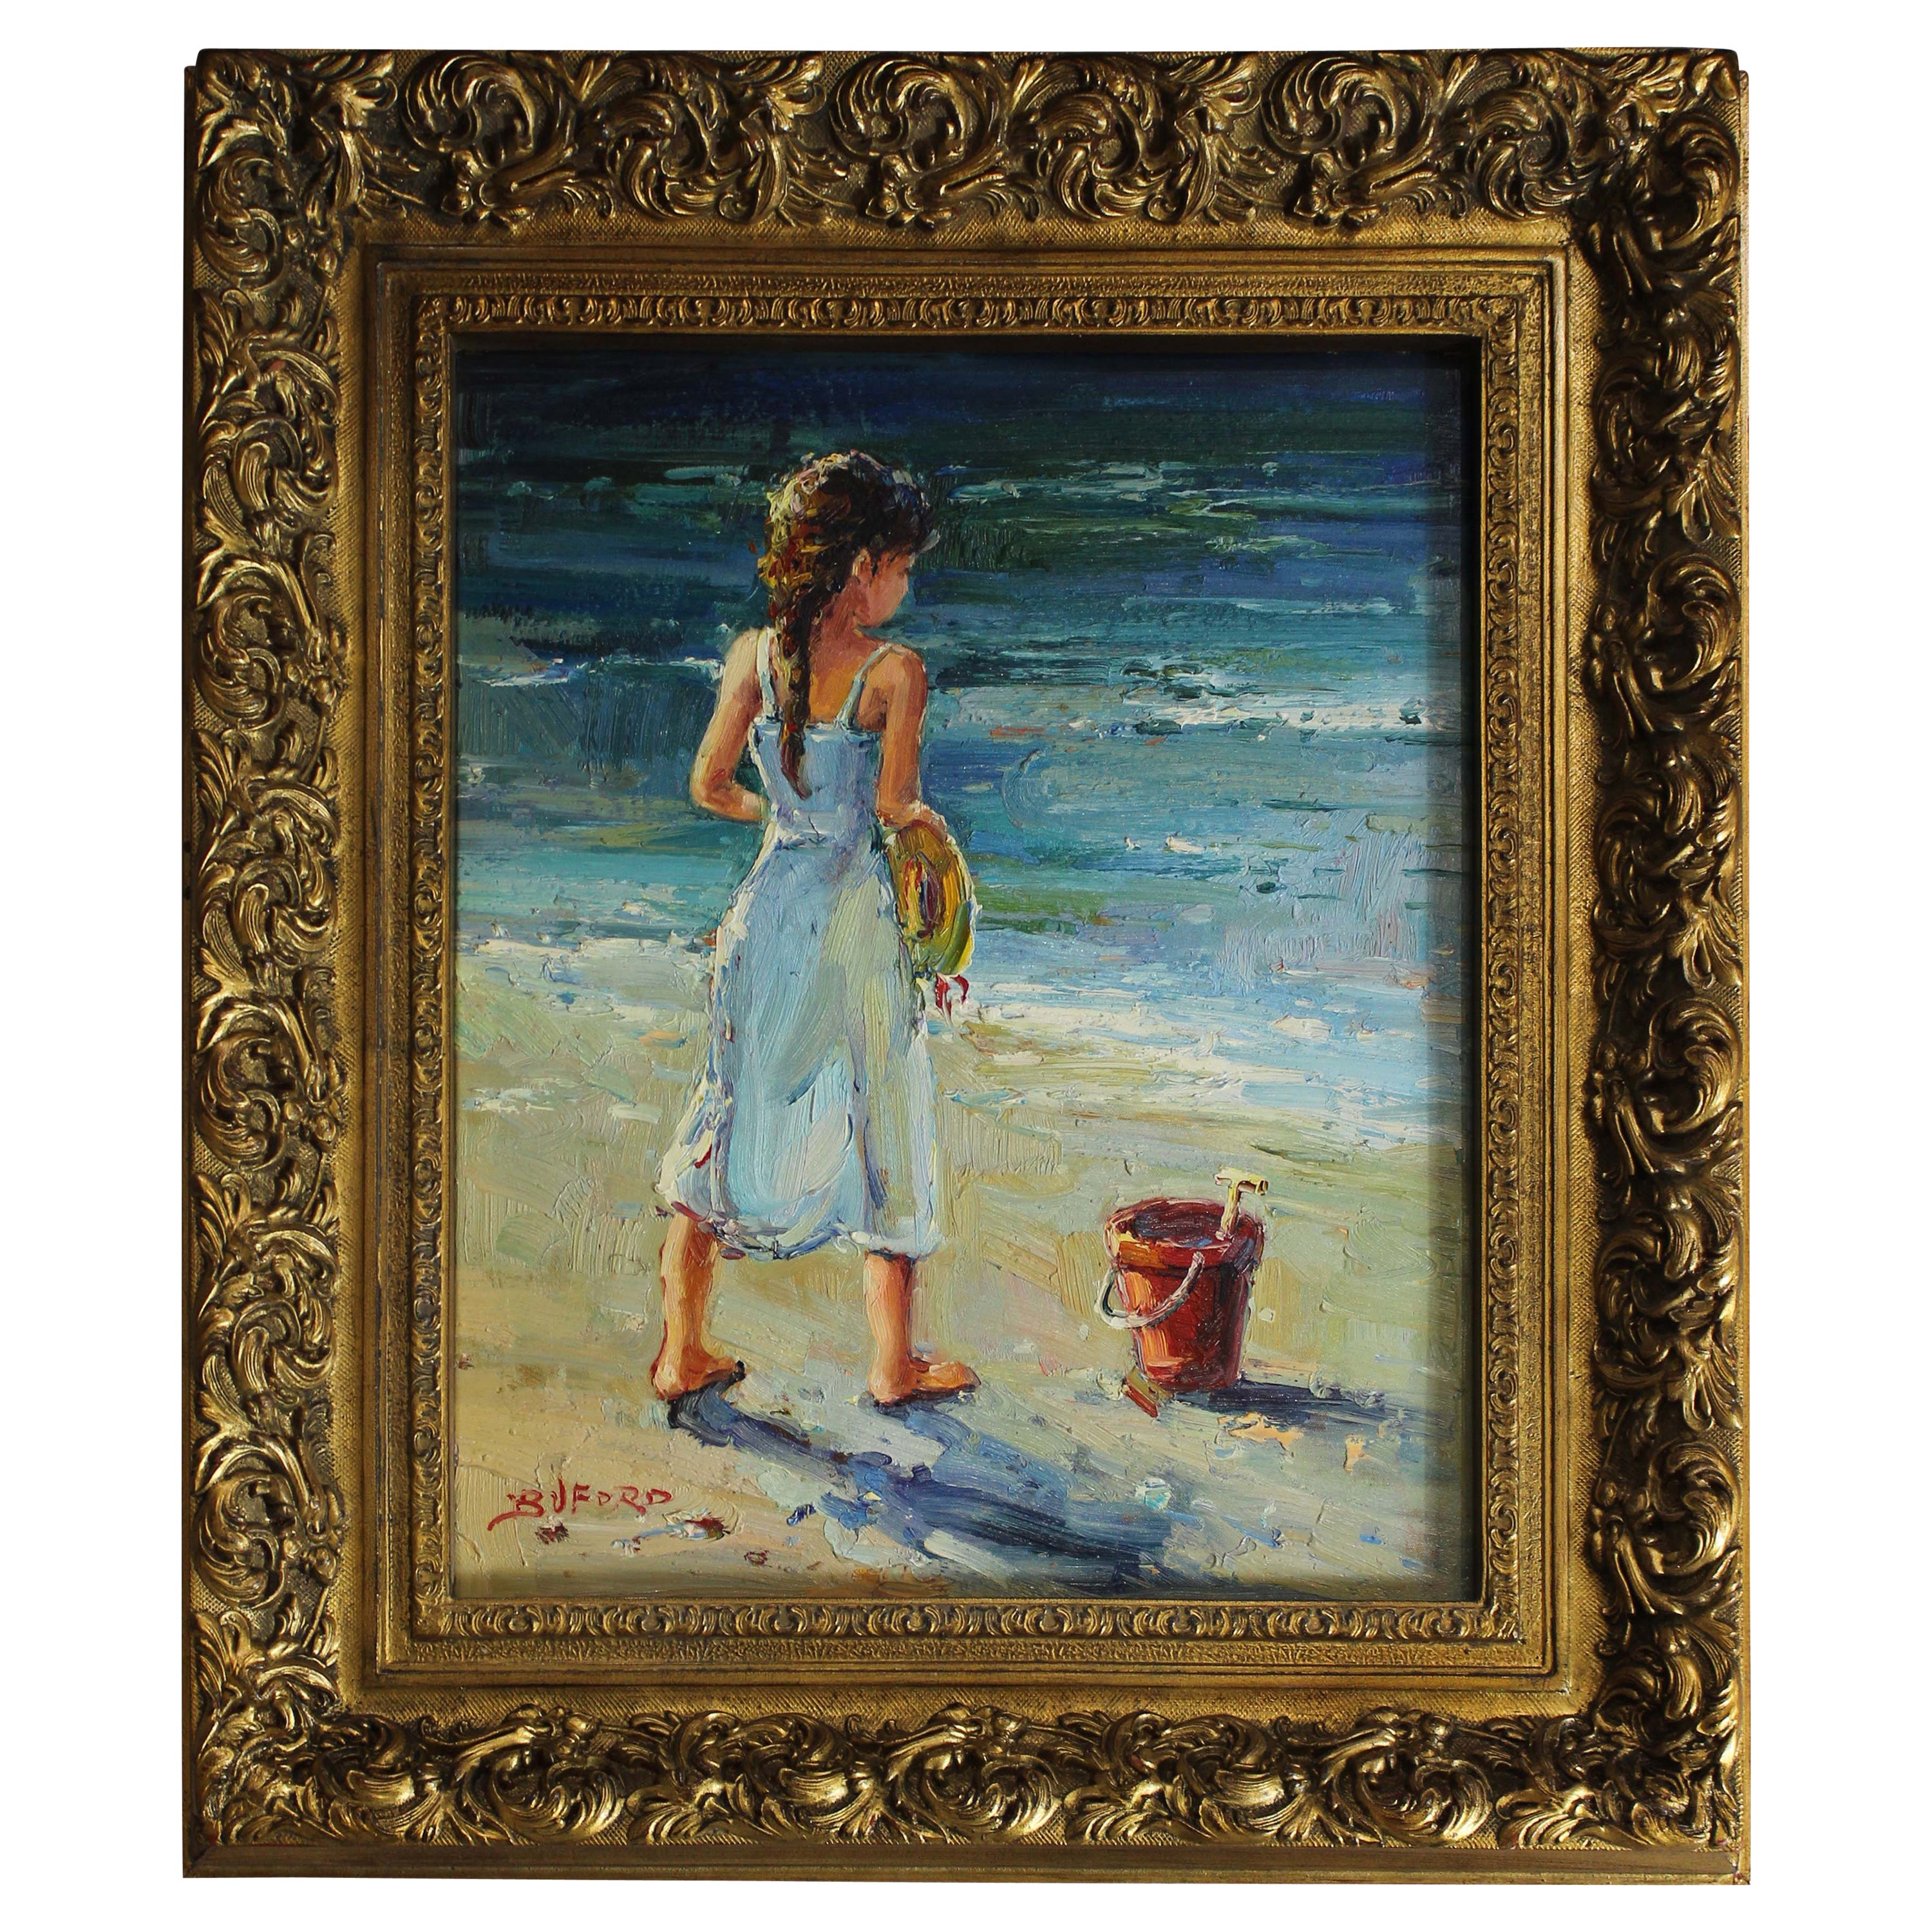 Oil Painting by Buford, Girl on the Beach